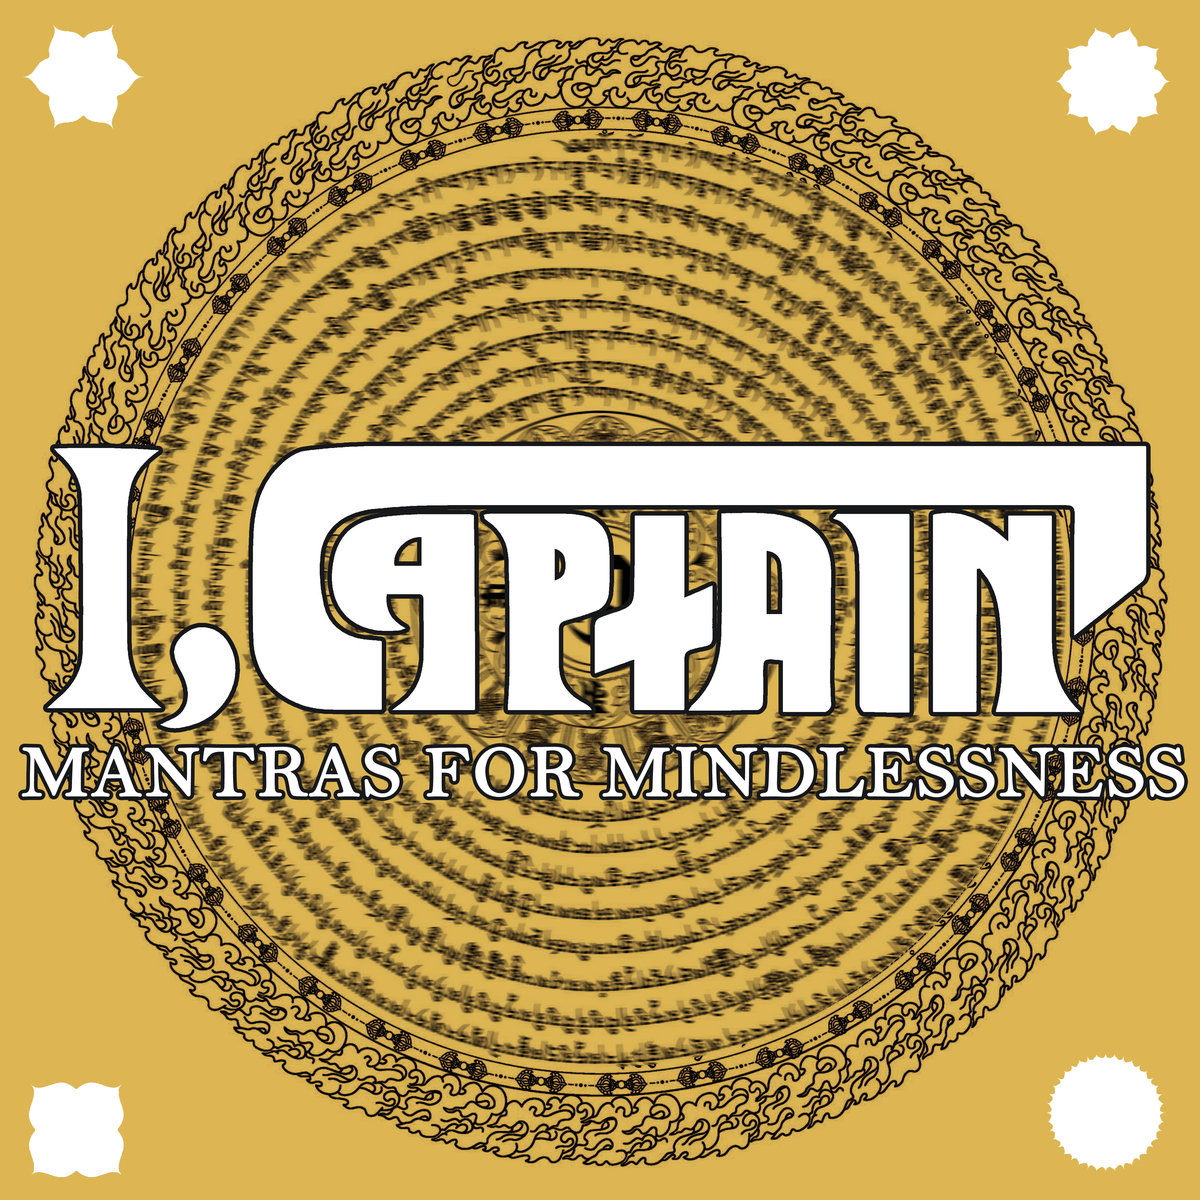 I Captain - Mantras For Mindlessness